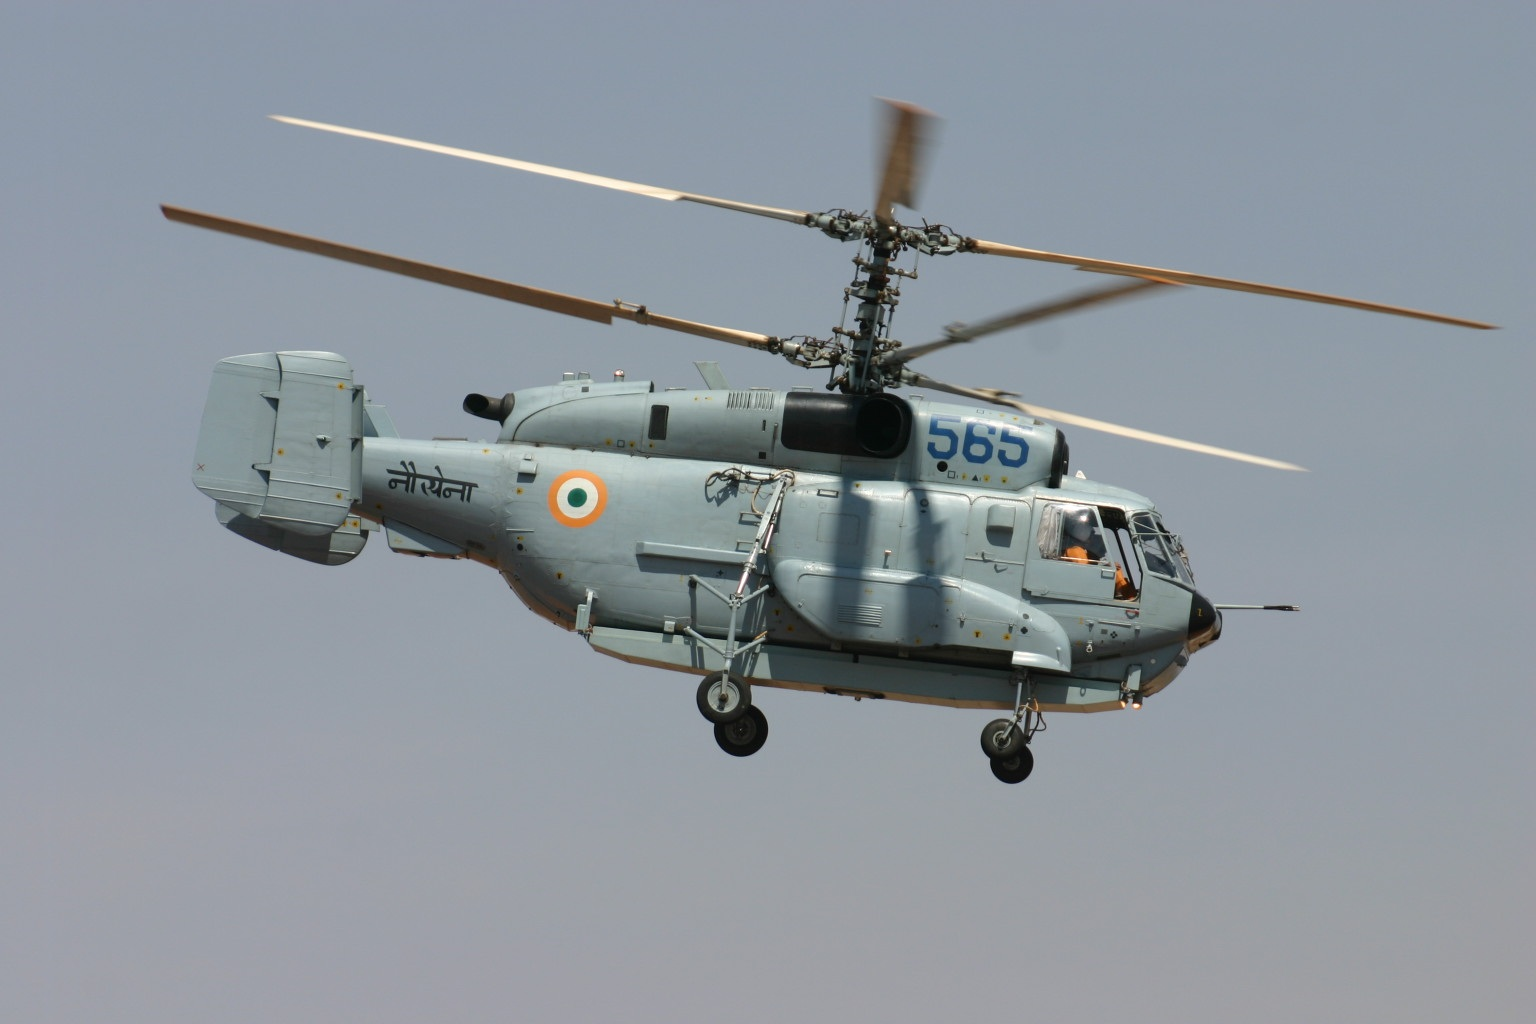 helicopter indian air force with File In585 Kamov Ka 28 Indian Navy  8414600528 on Watch additionally Merlin Aw101 Version Vip as well Pakistani F 16s Red Flag Green Flag Exercises together with Apache Helicopter Wallpaper furthermore File IN585 Kamov KA 28 Indian Navy  8414600528.